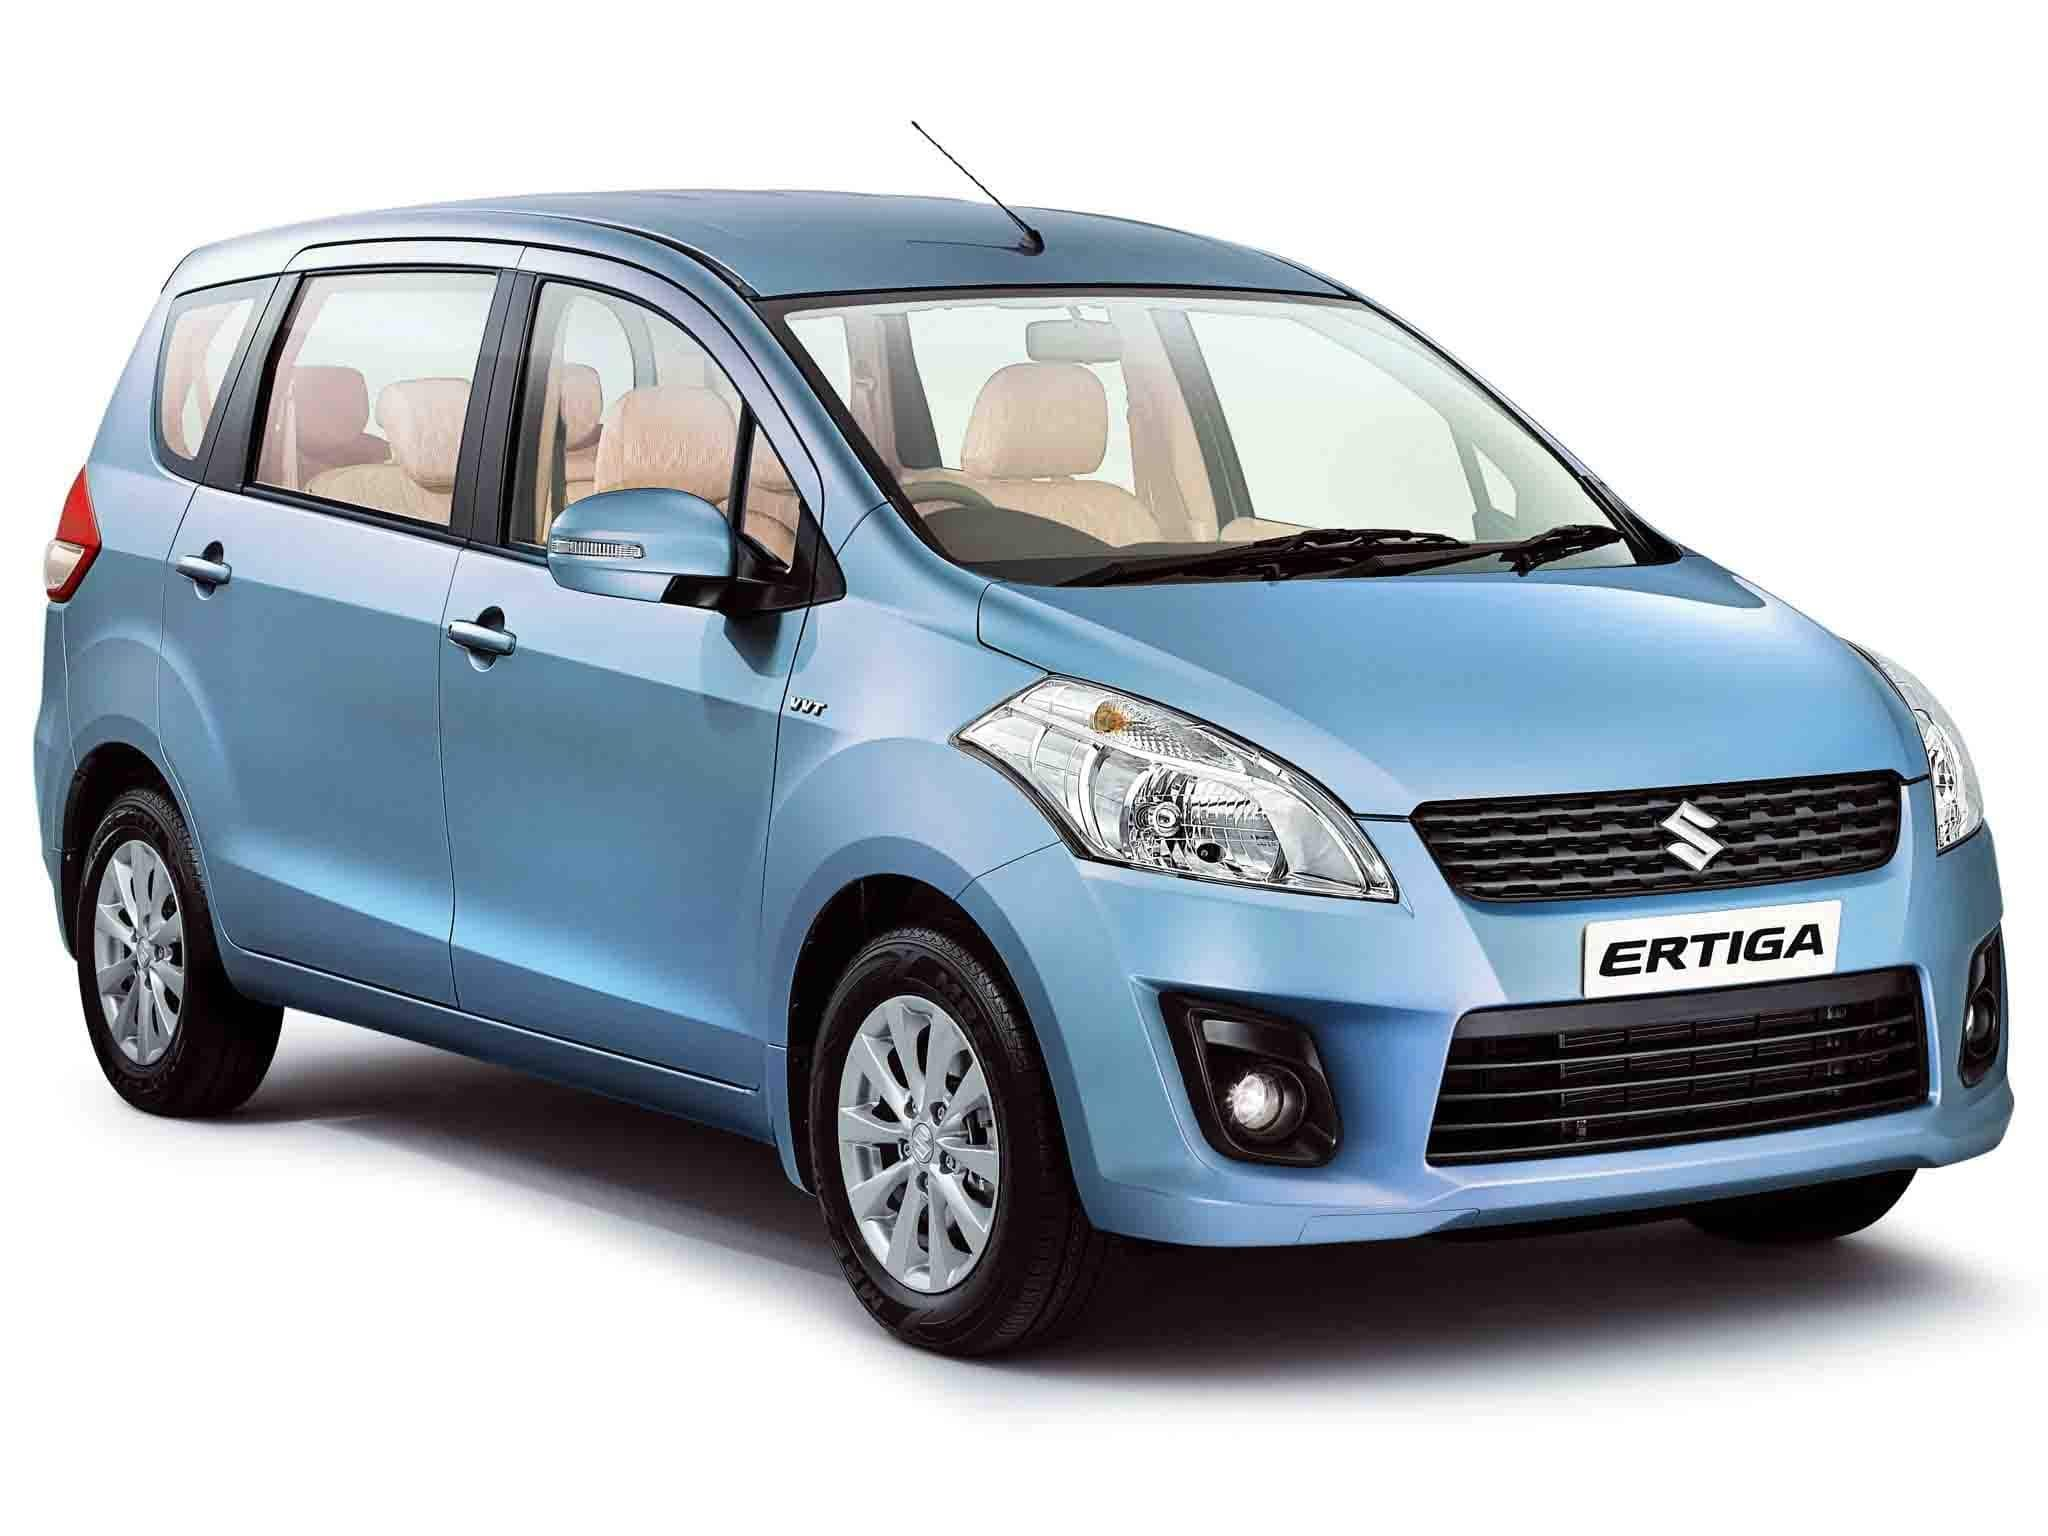 Latest Maruti Suzuki Ertiga India Price Review Images Maruti Free Download